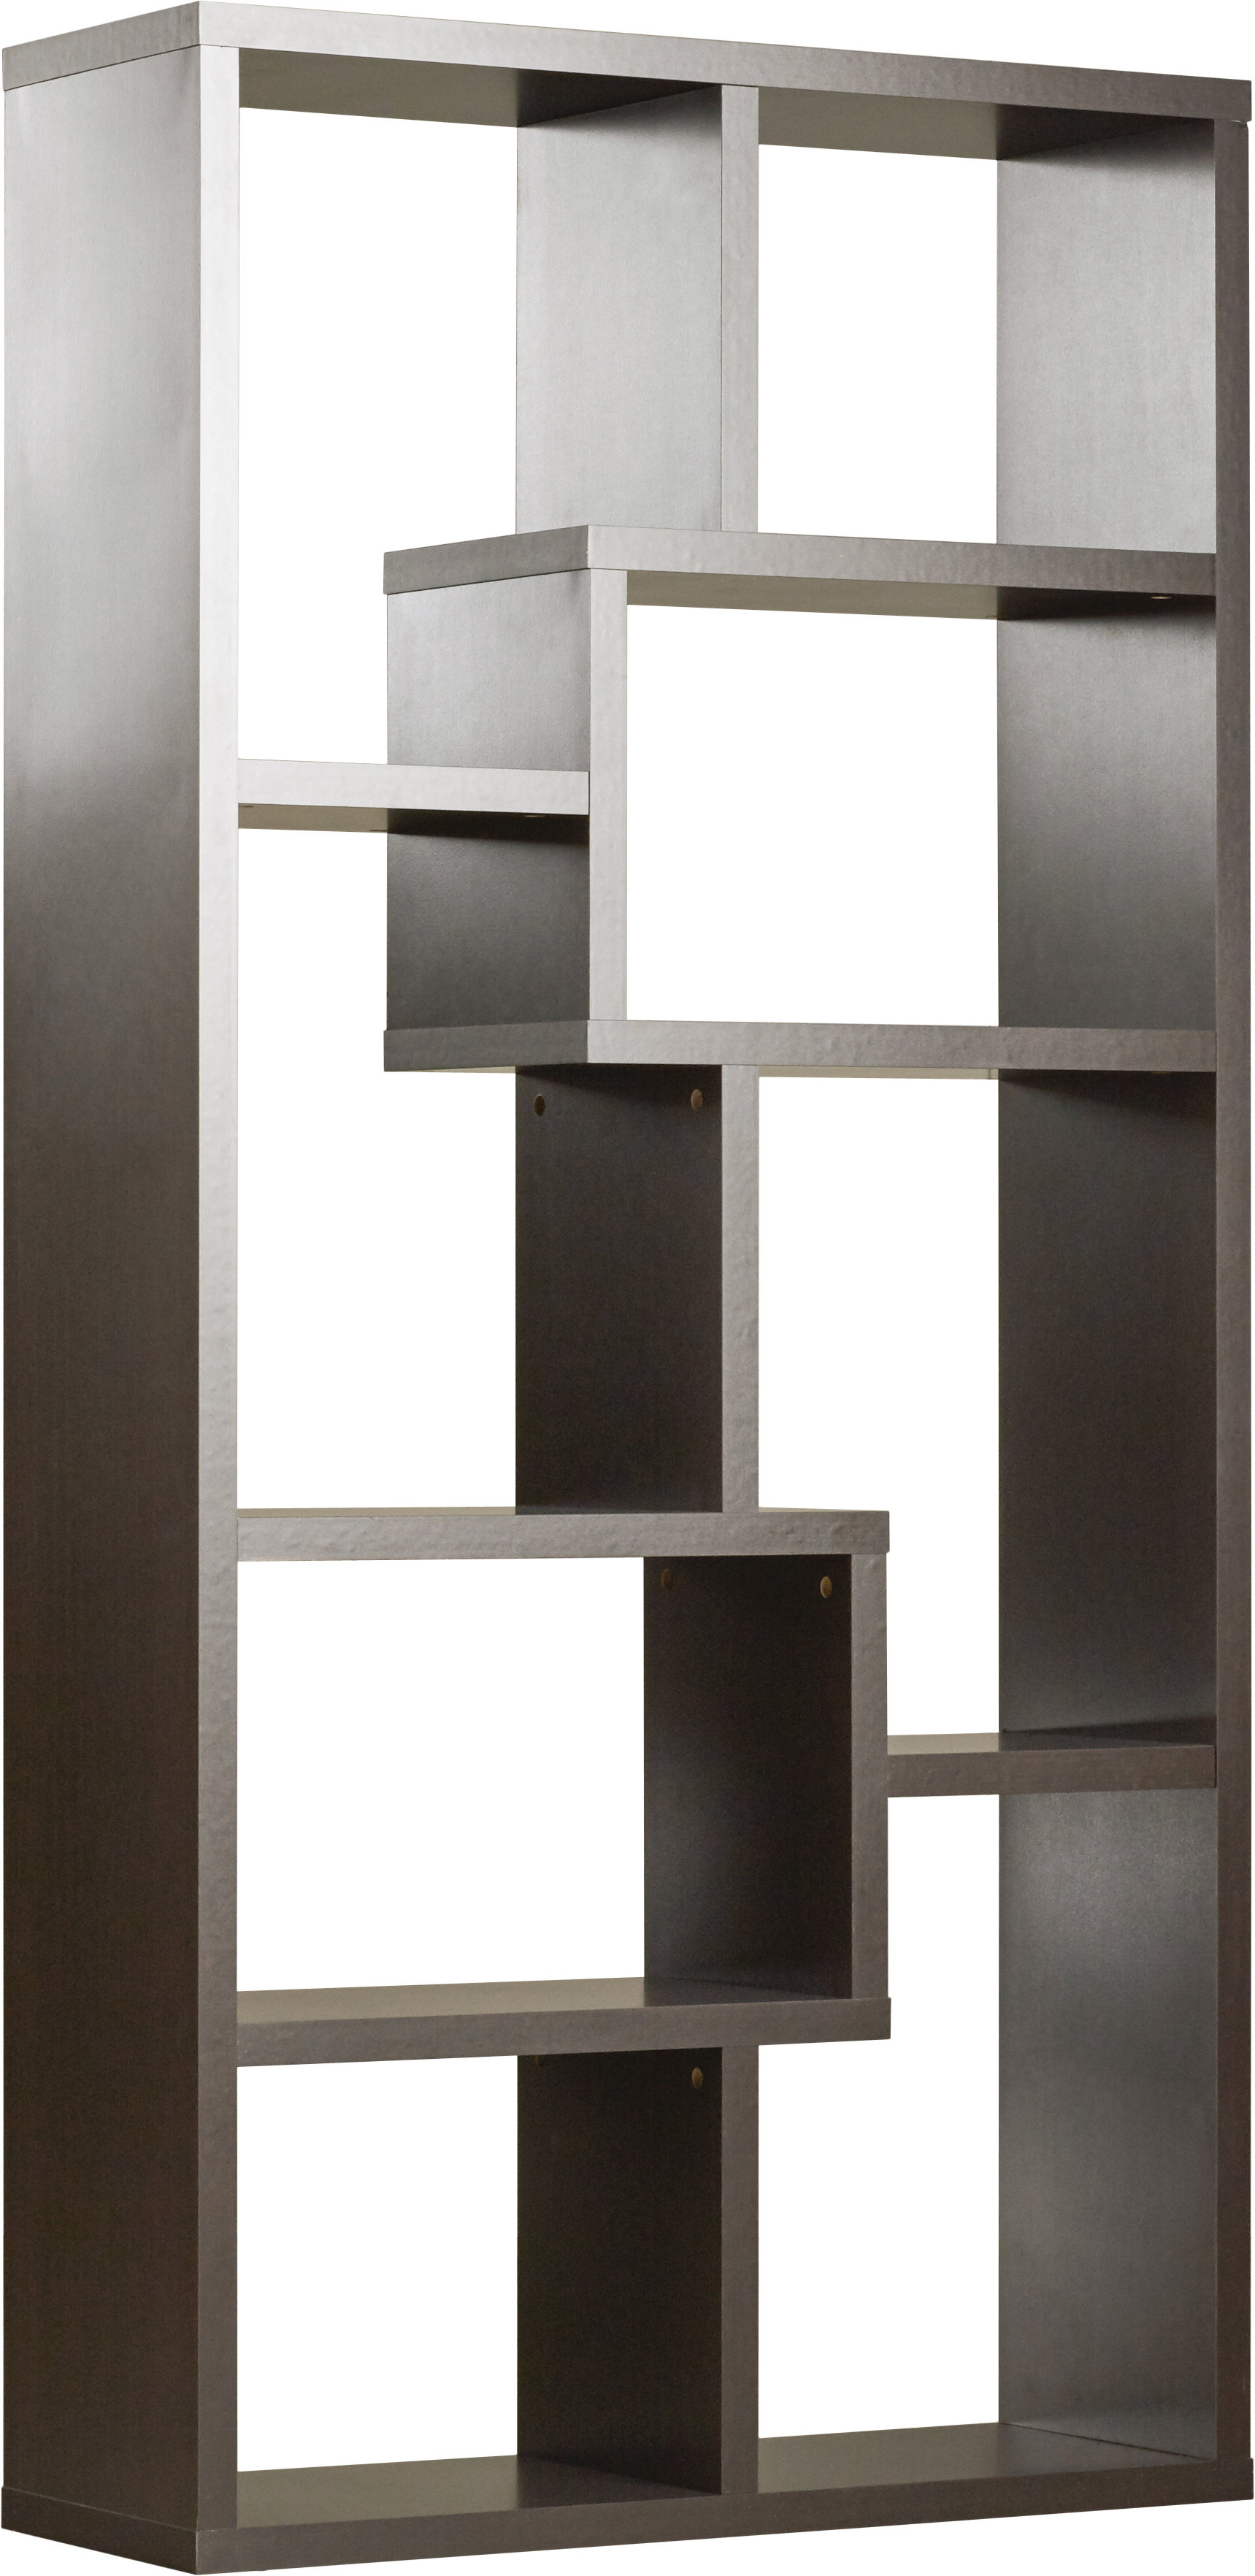 Well Liked Ansley Geometric Bookcases Pertaining To Brayden Studio Ansley Geometric Bookcase (View 19 of 20)